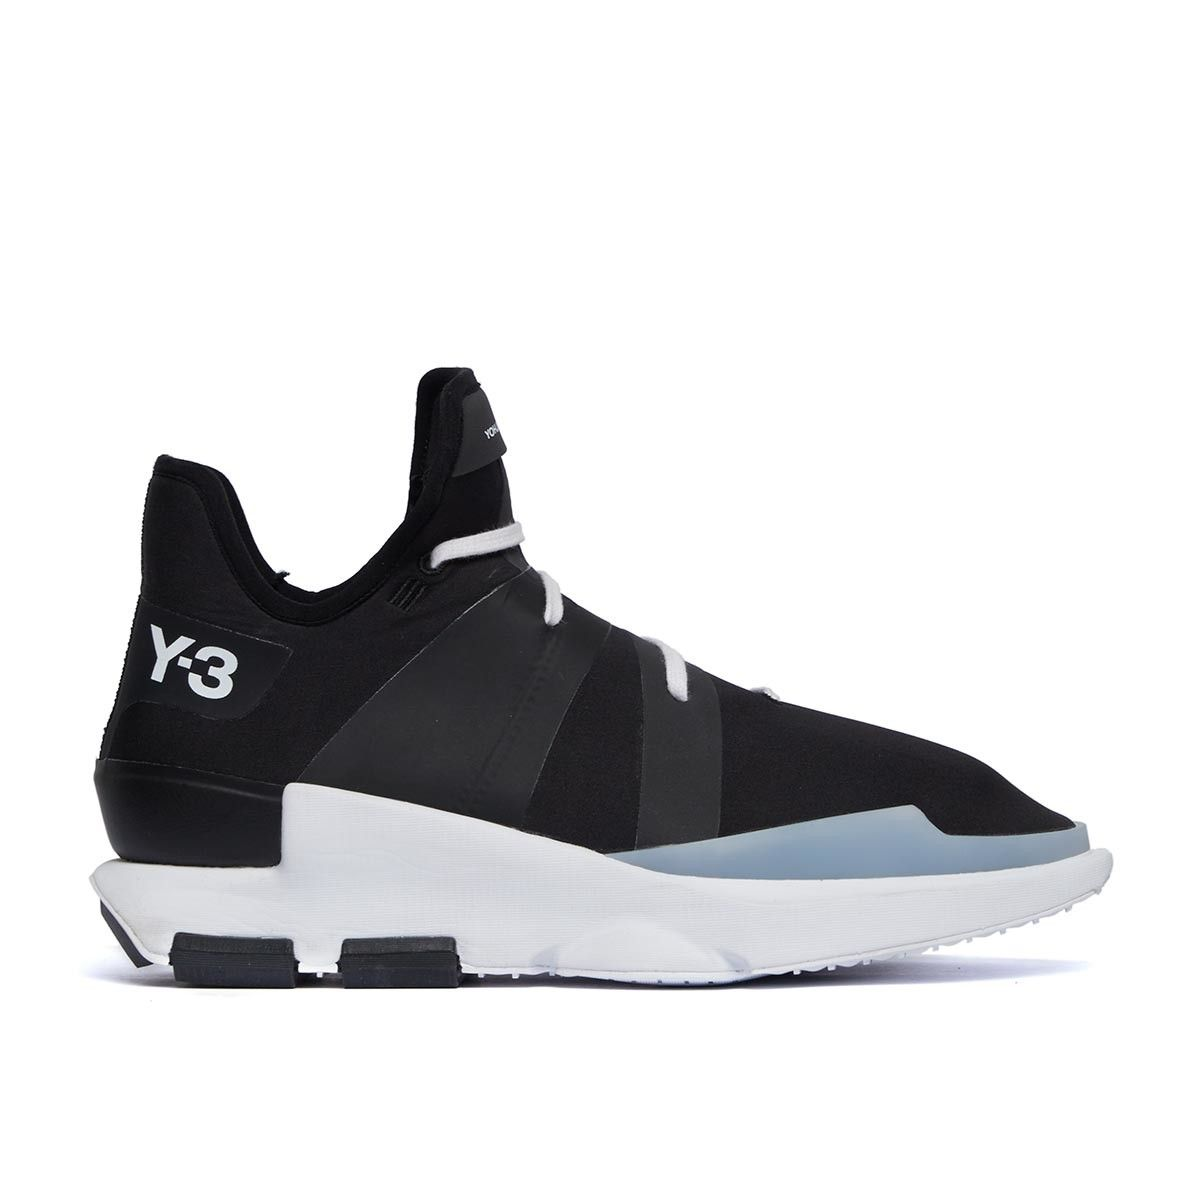 593680046 Noci Low sneakers from the S S2017 Y-3 by Yohji Yamamoto collection in black